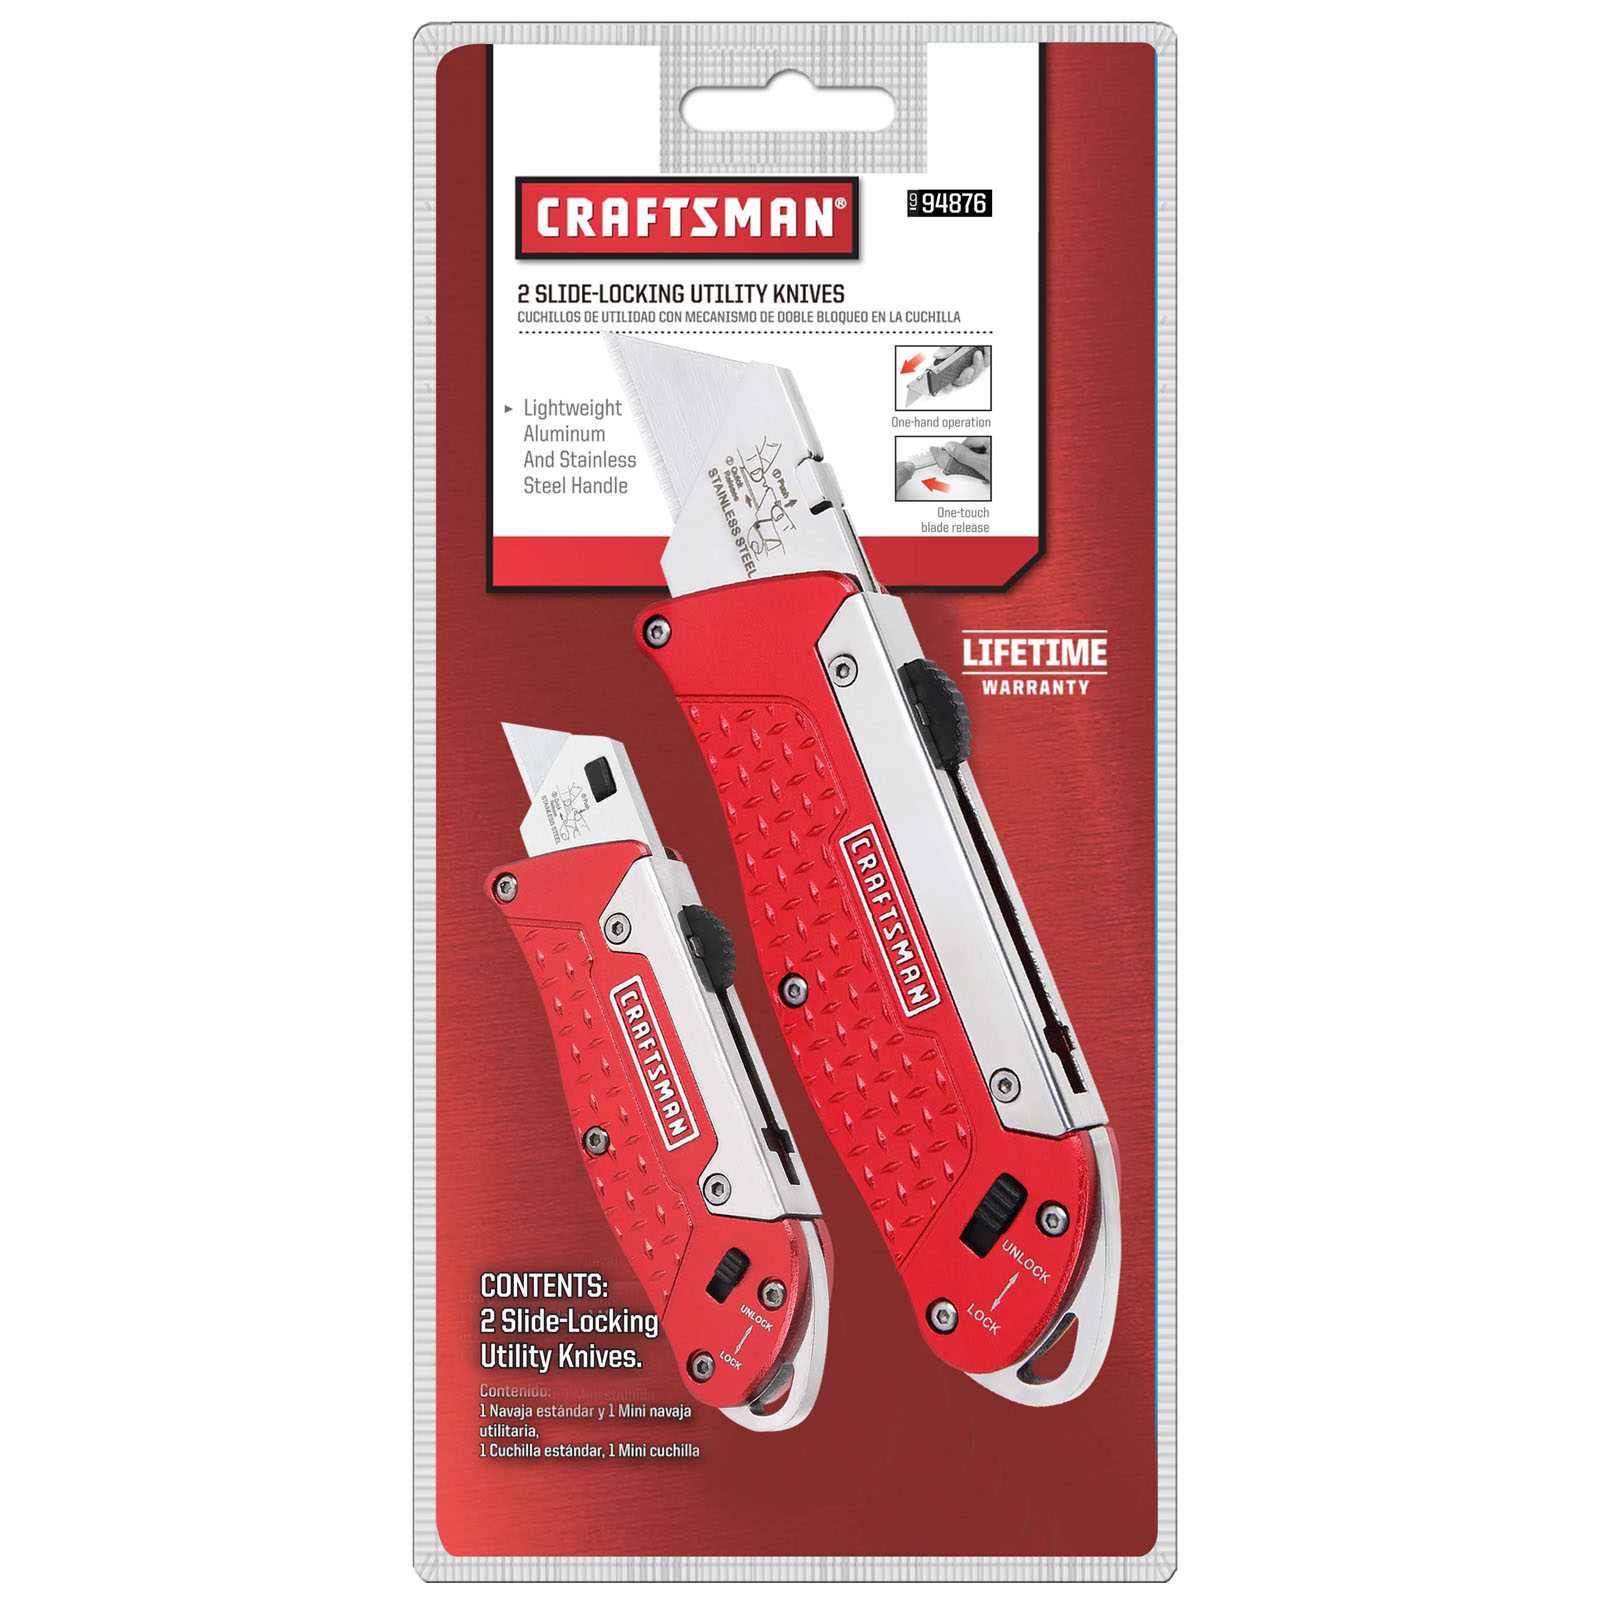 Craftsman Aluminum Slide Locking Utility Knife Set